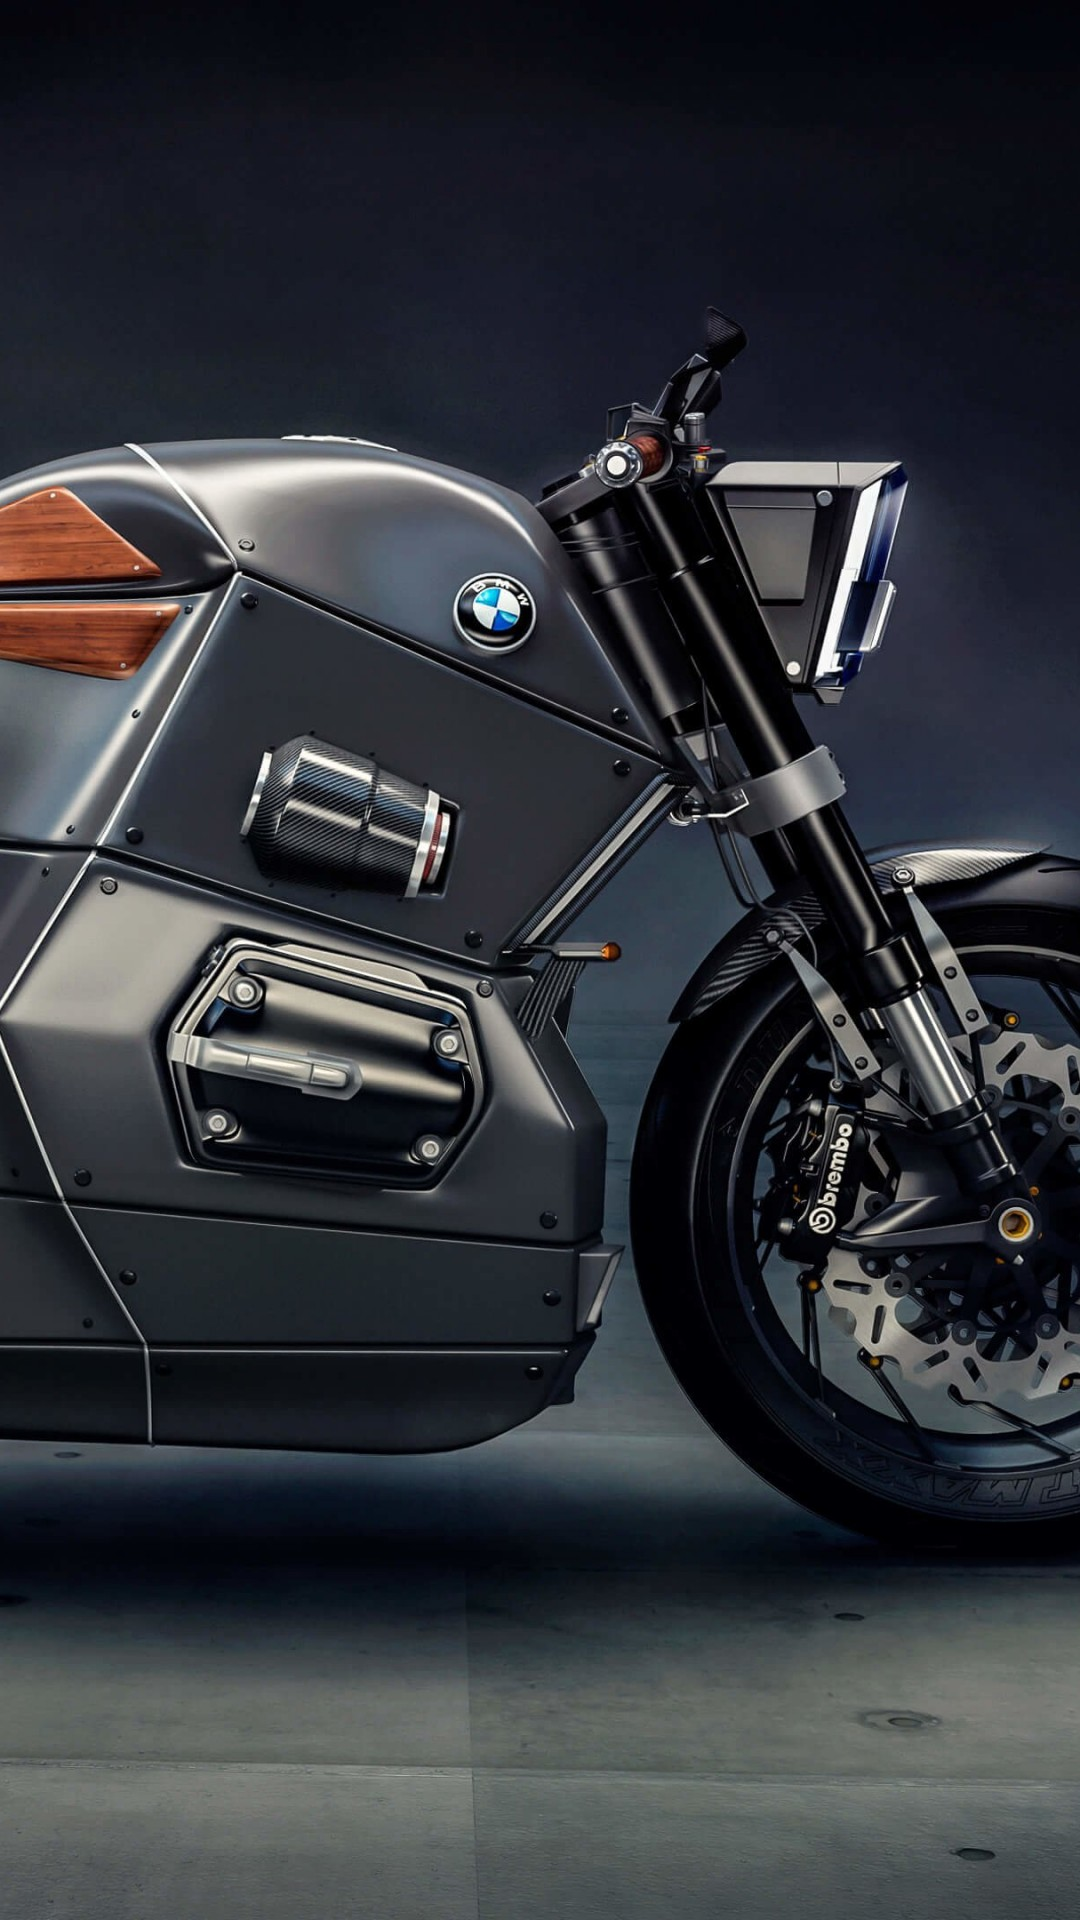 BMW M Bike Concept Wallpaper for SONY Xperia Z1